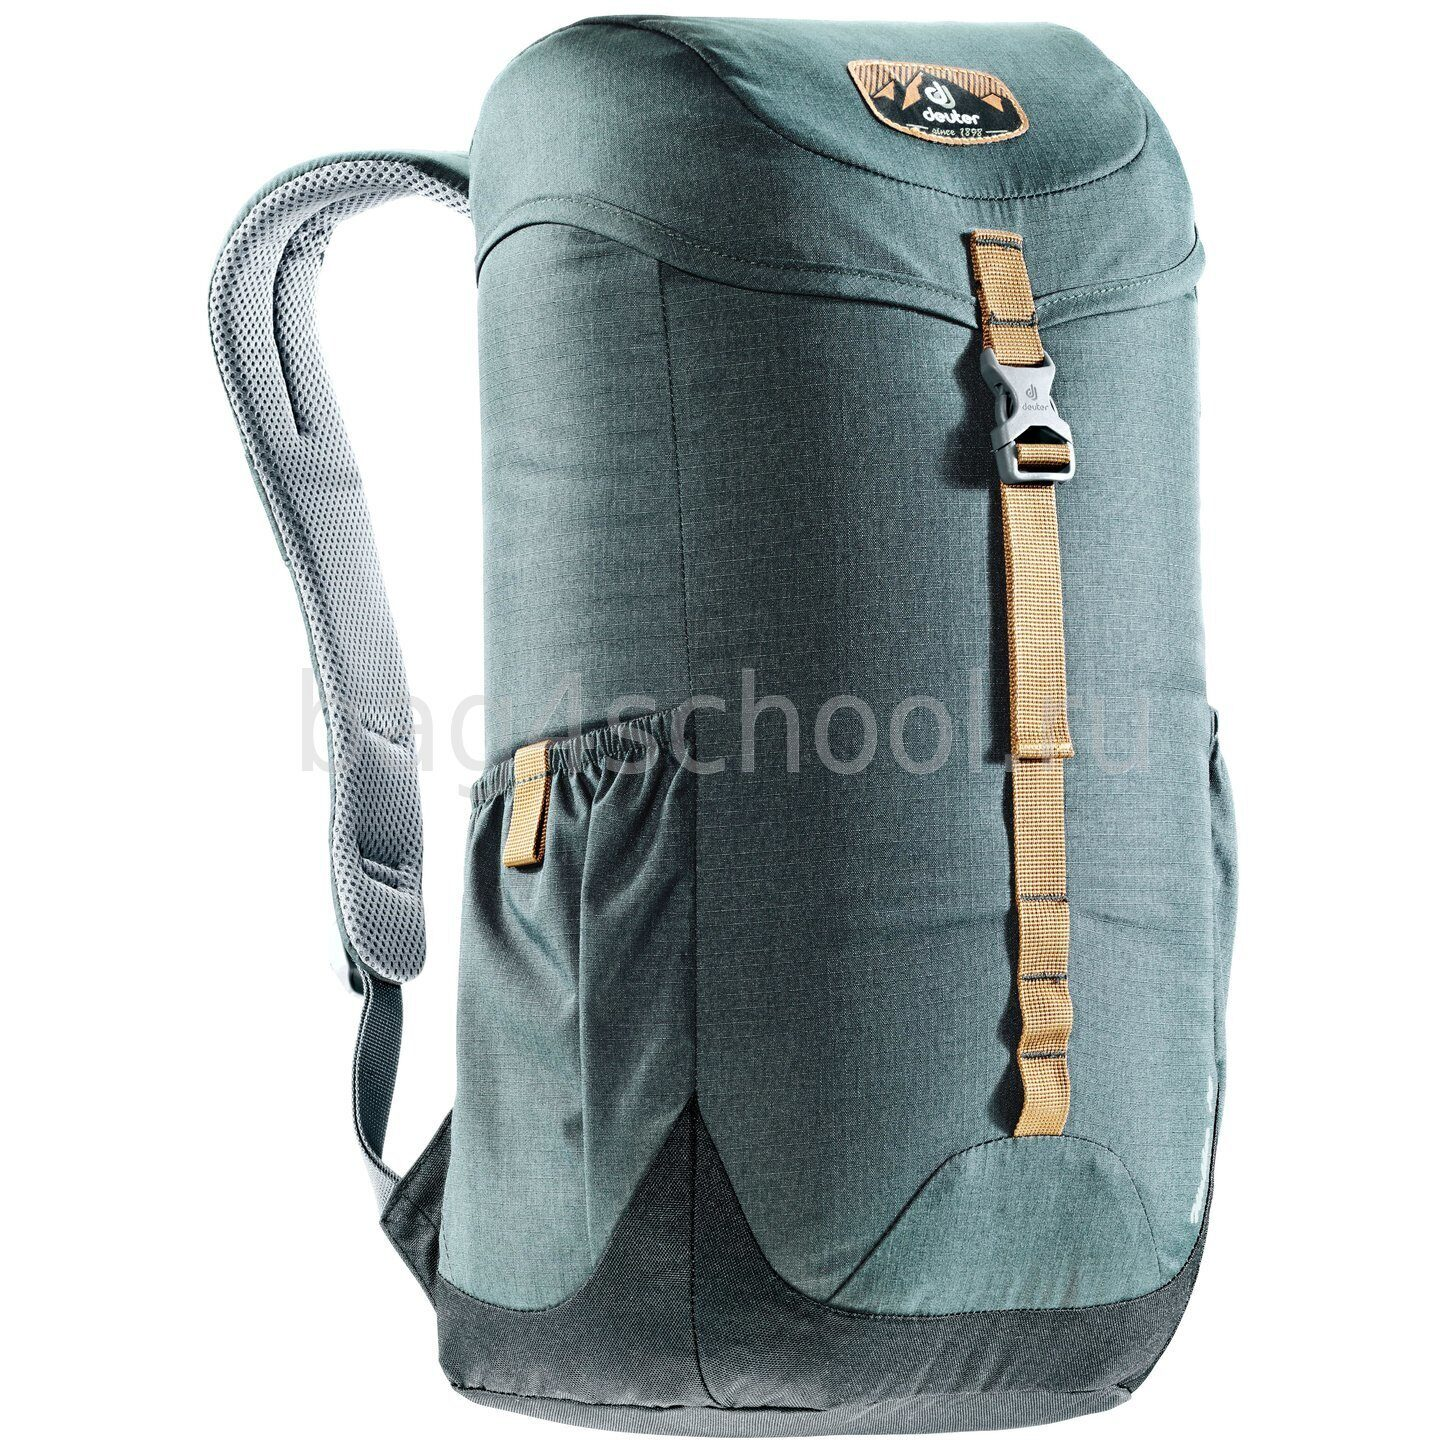 Рюкзак Deuter Walker 16 anthracite-black 3810517-4750